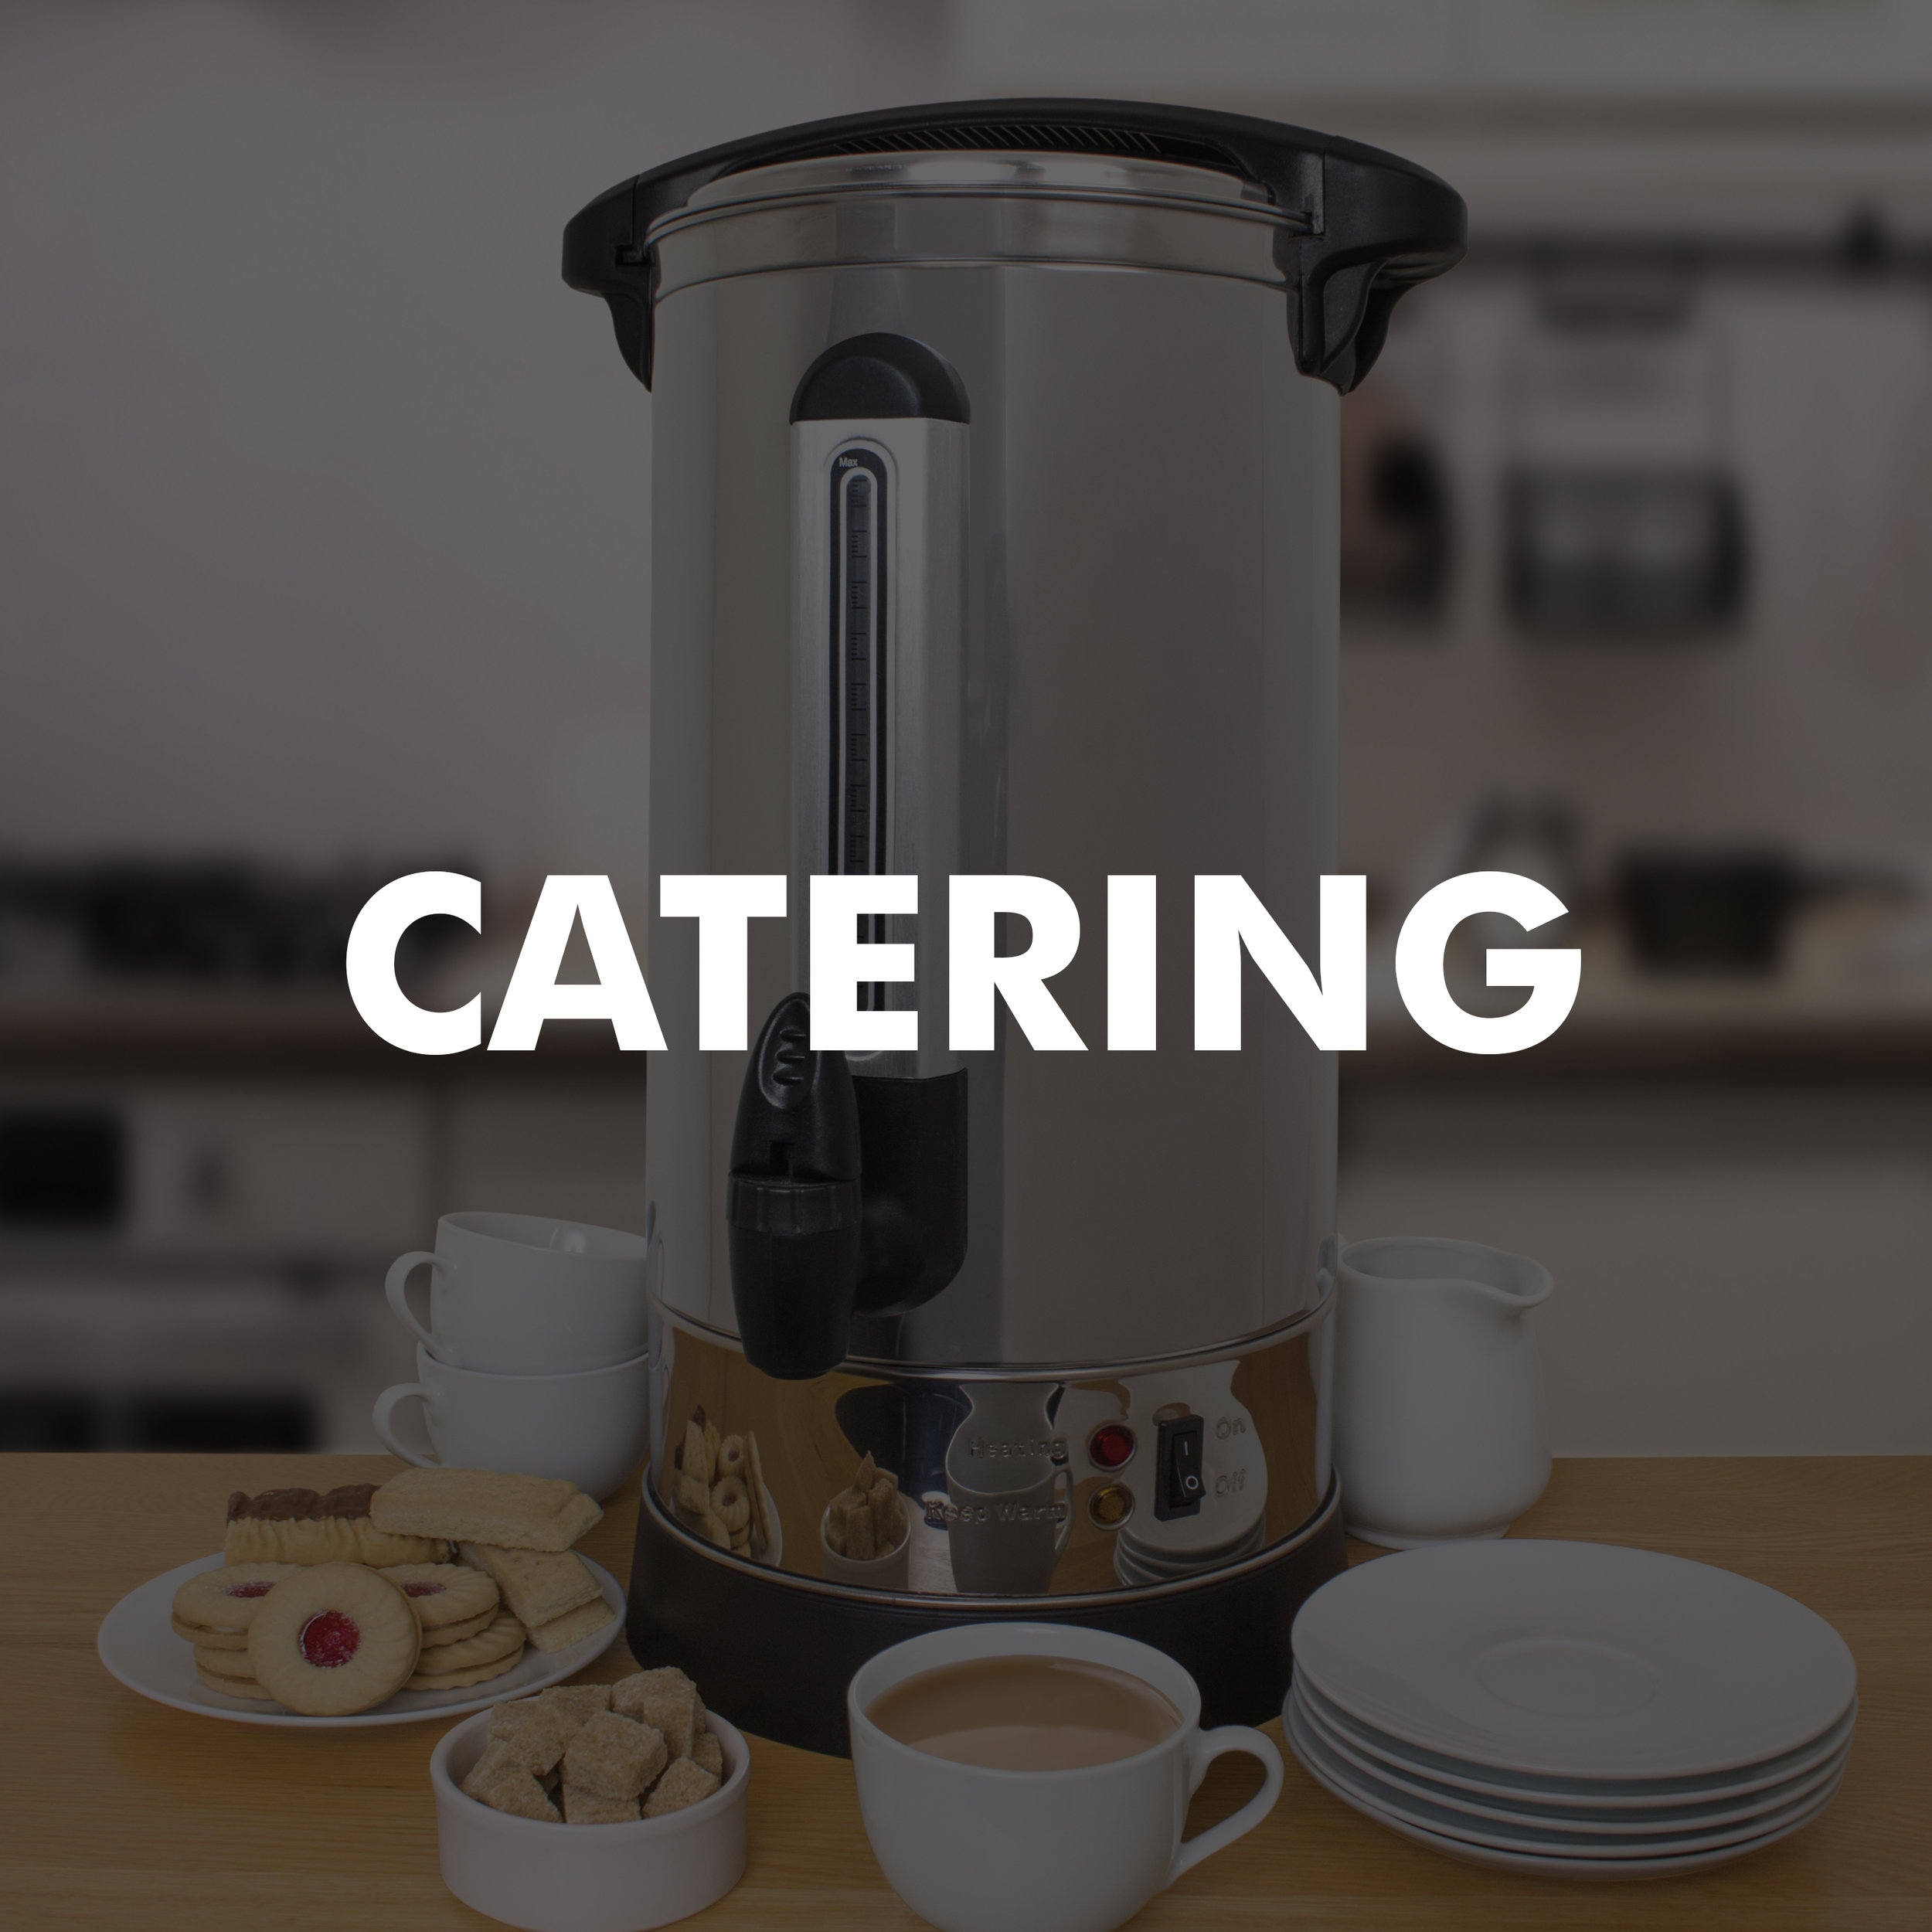 Catering category